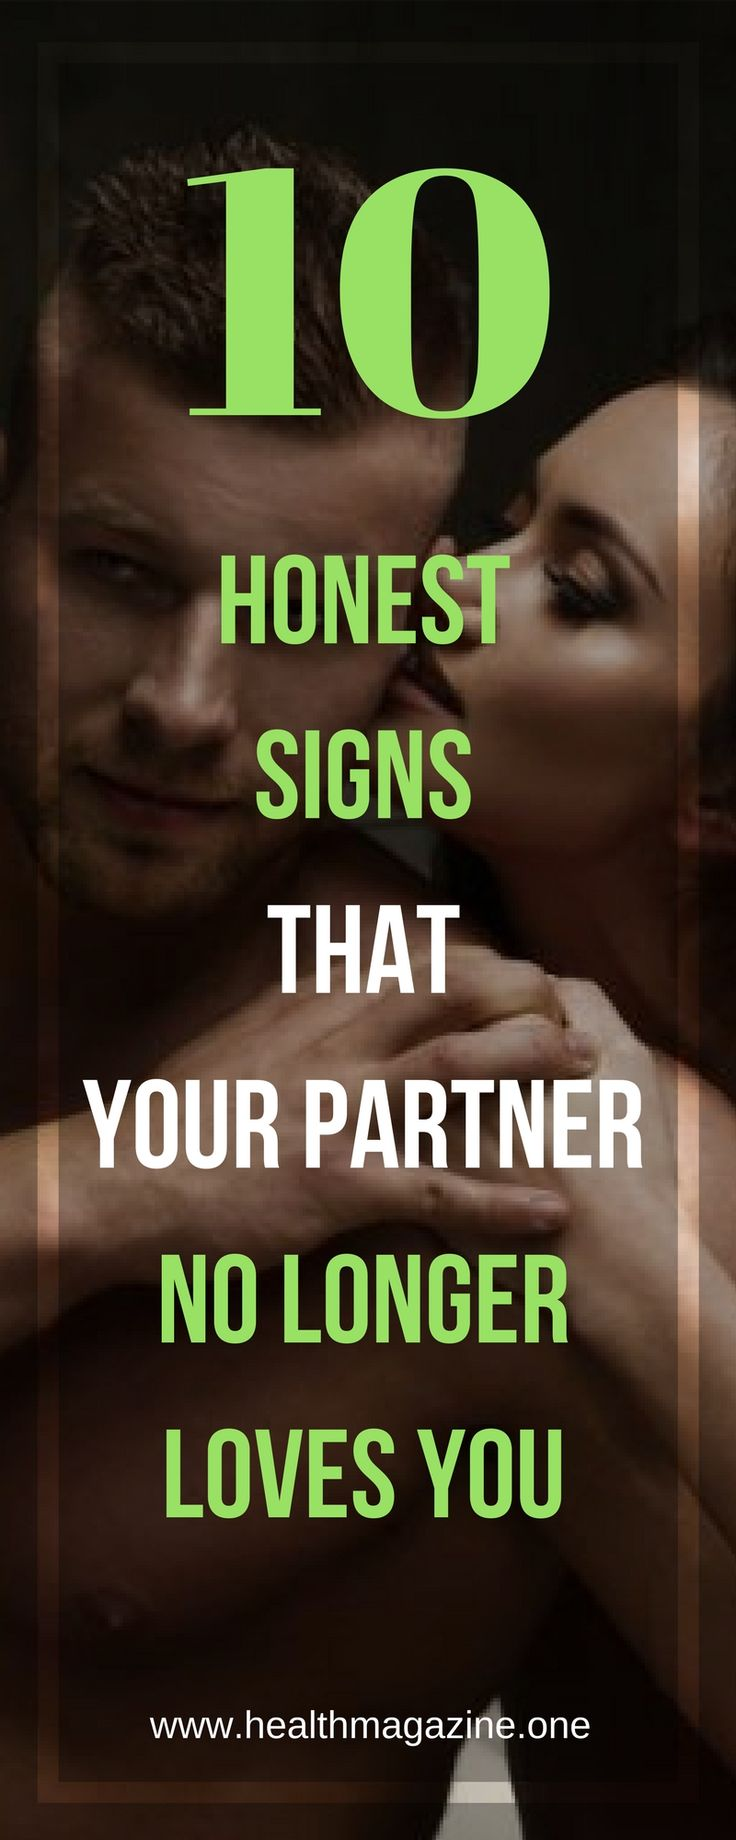 10 HONEST SIGNS Indicating That Your Partner No Longer Loves You